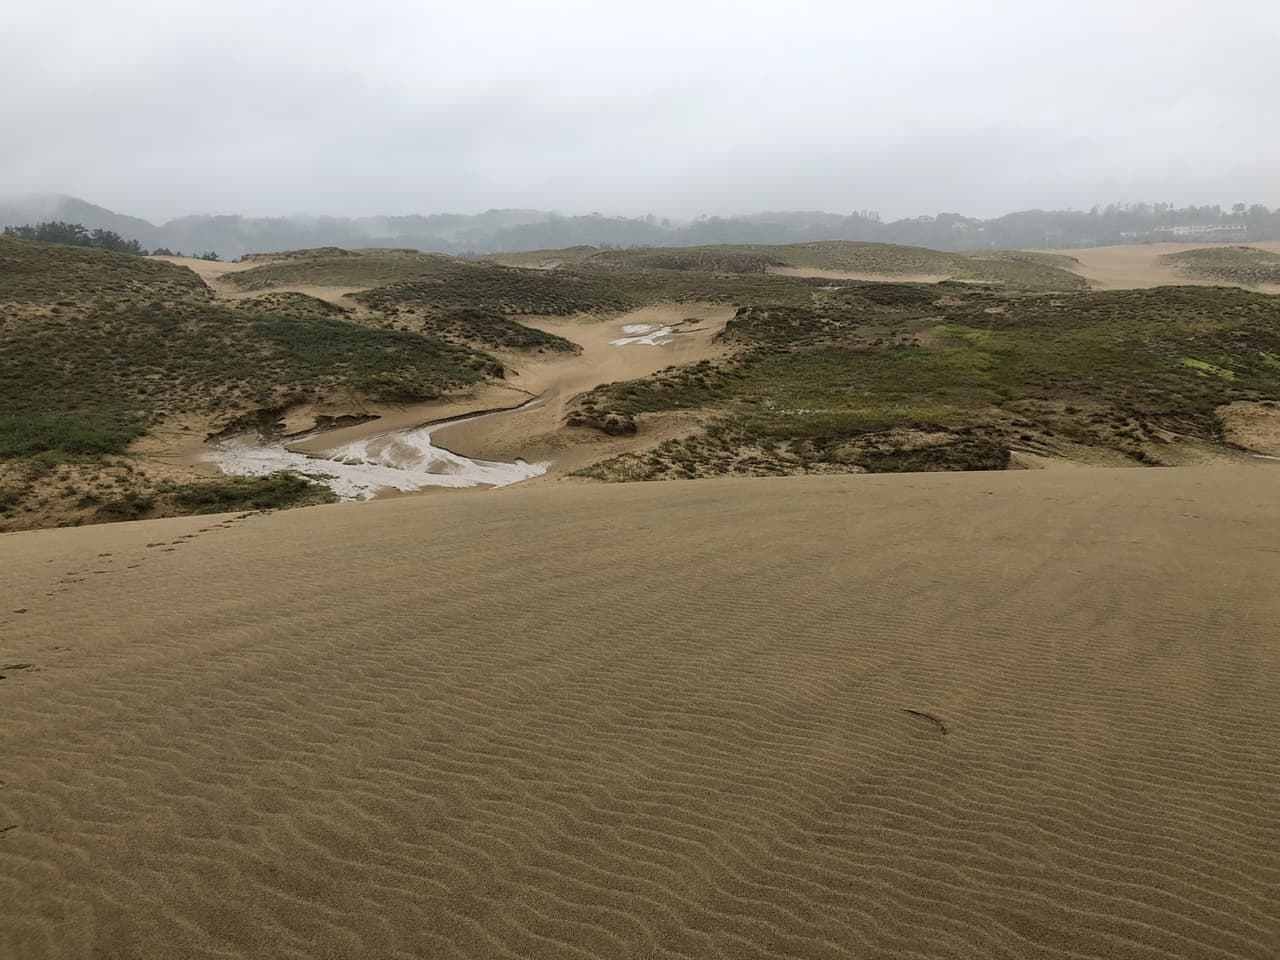 The fascinating sand dunes of Tottori